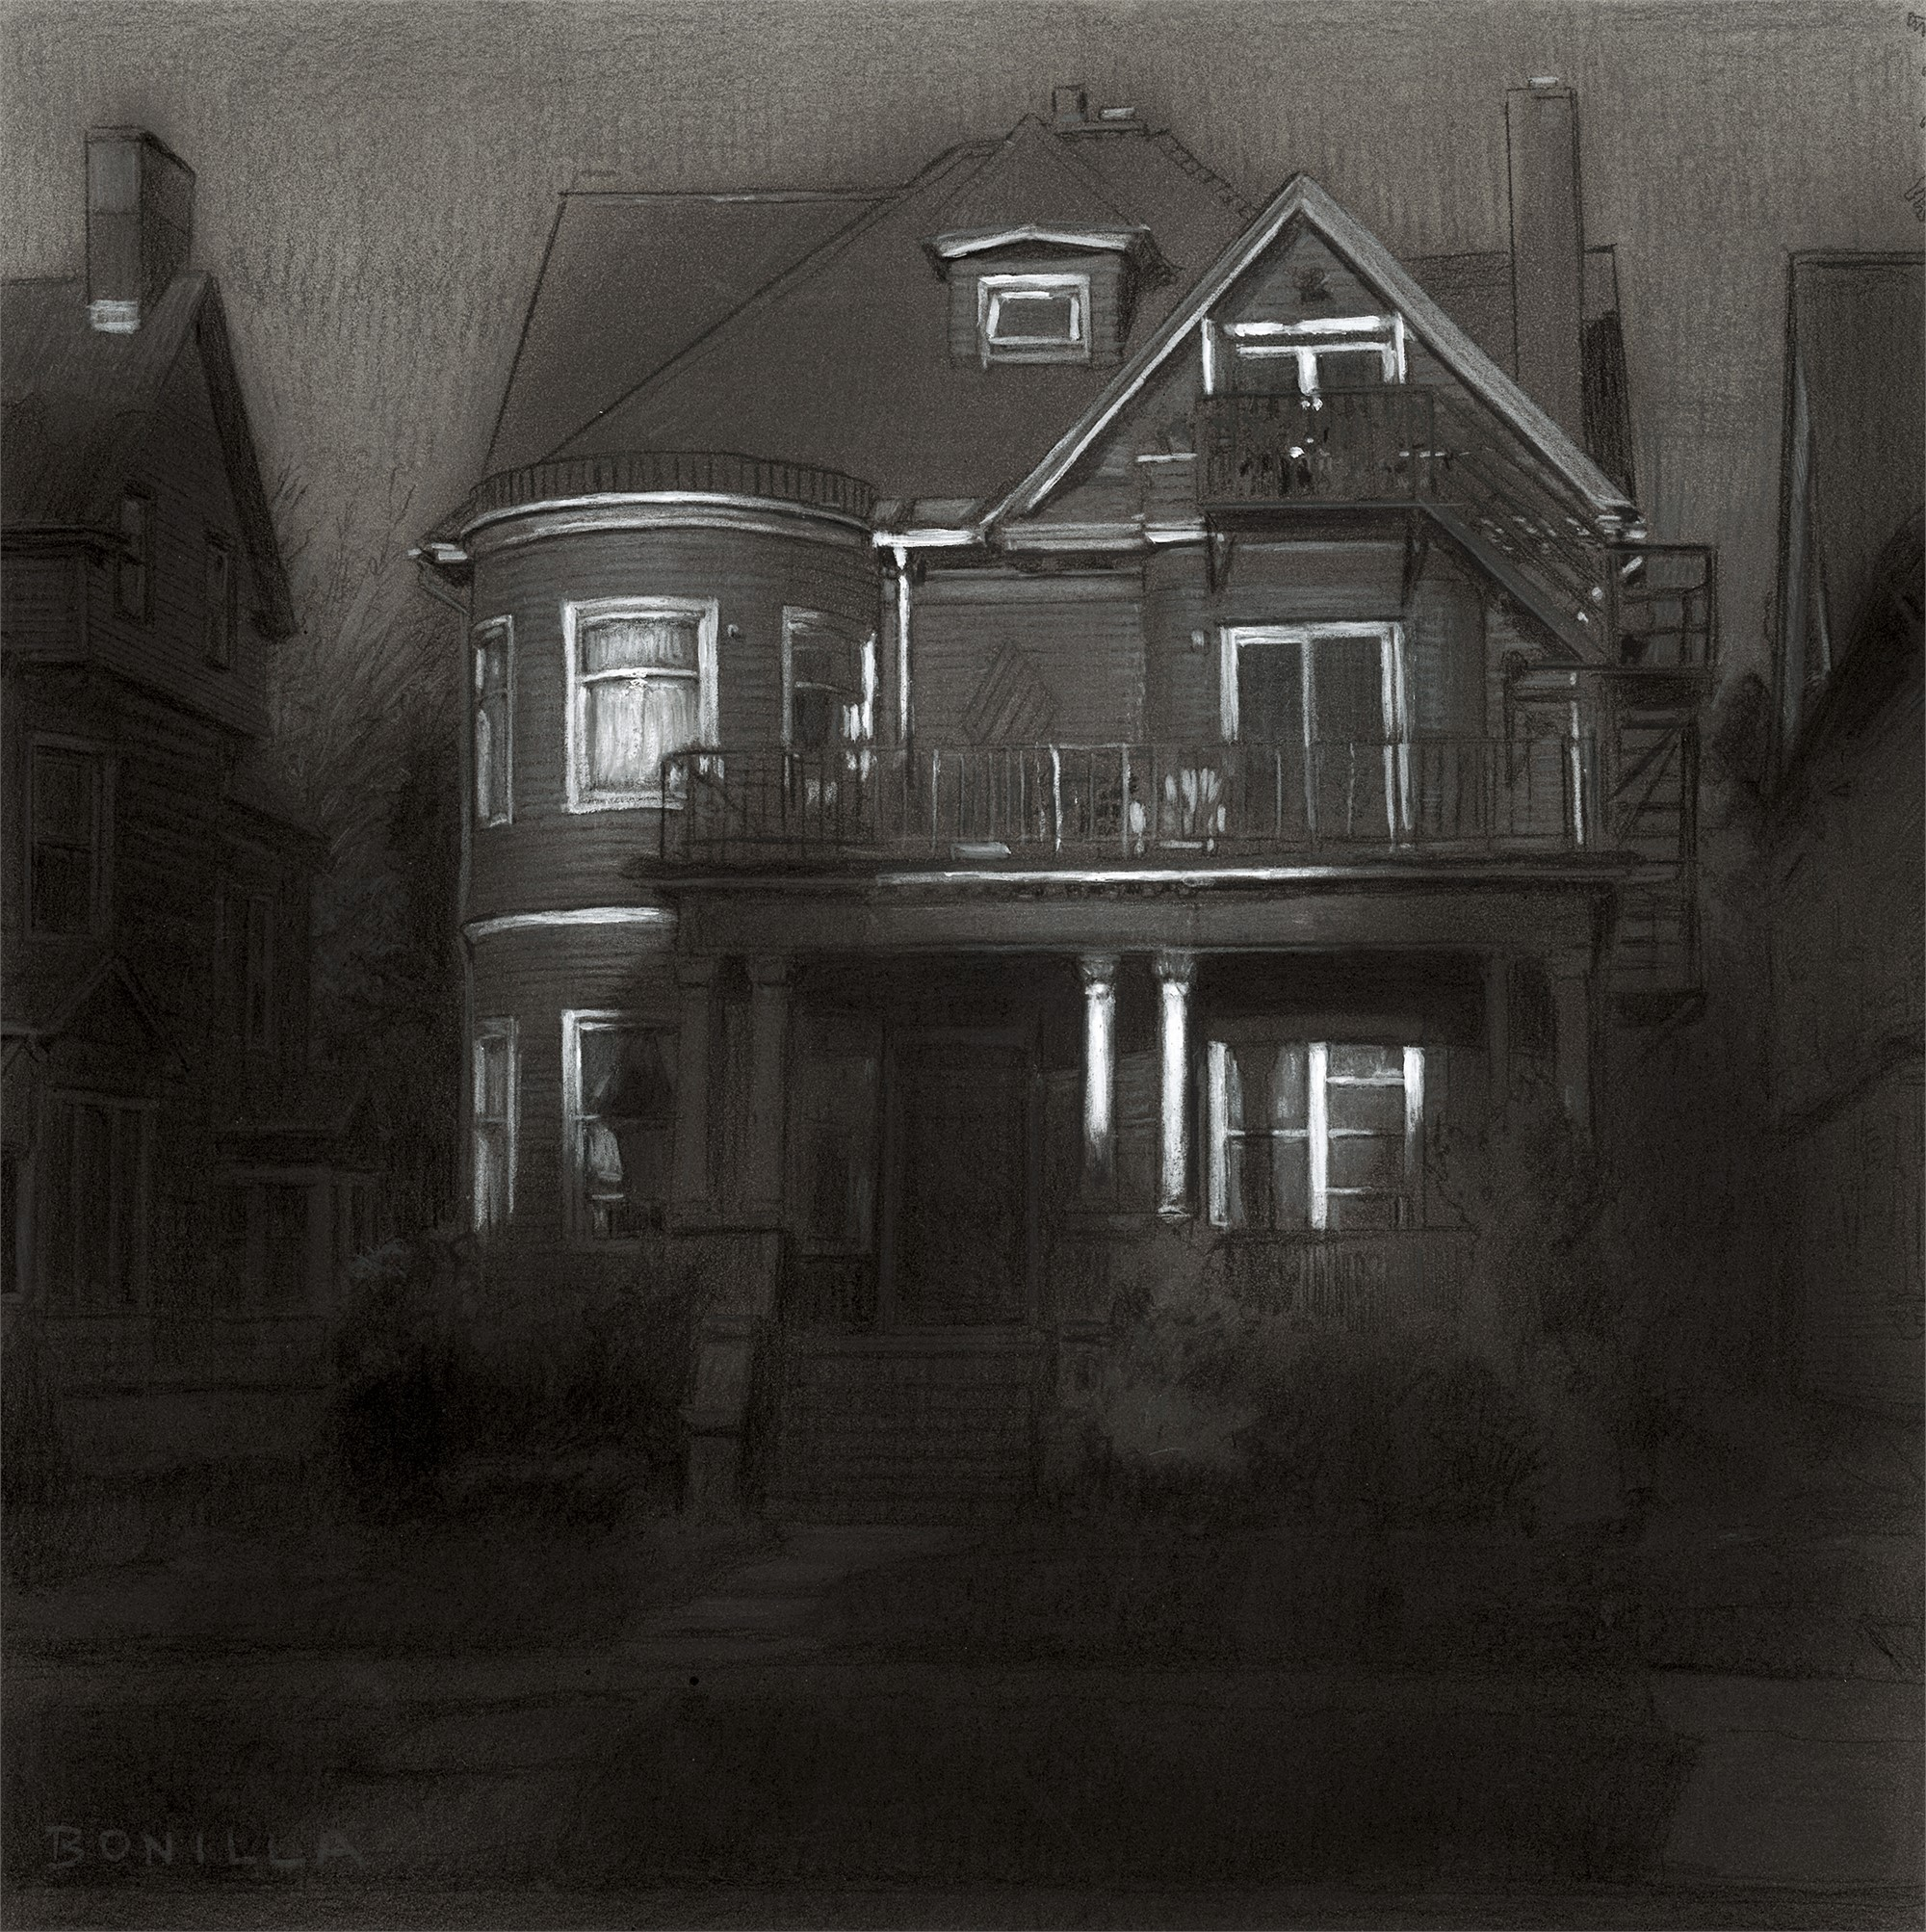 Study for Richmond and 17th by Raymond Bonilla